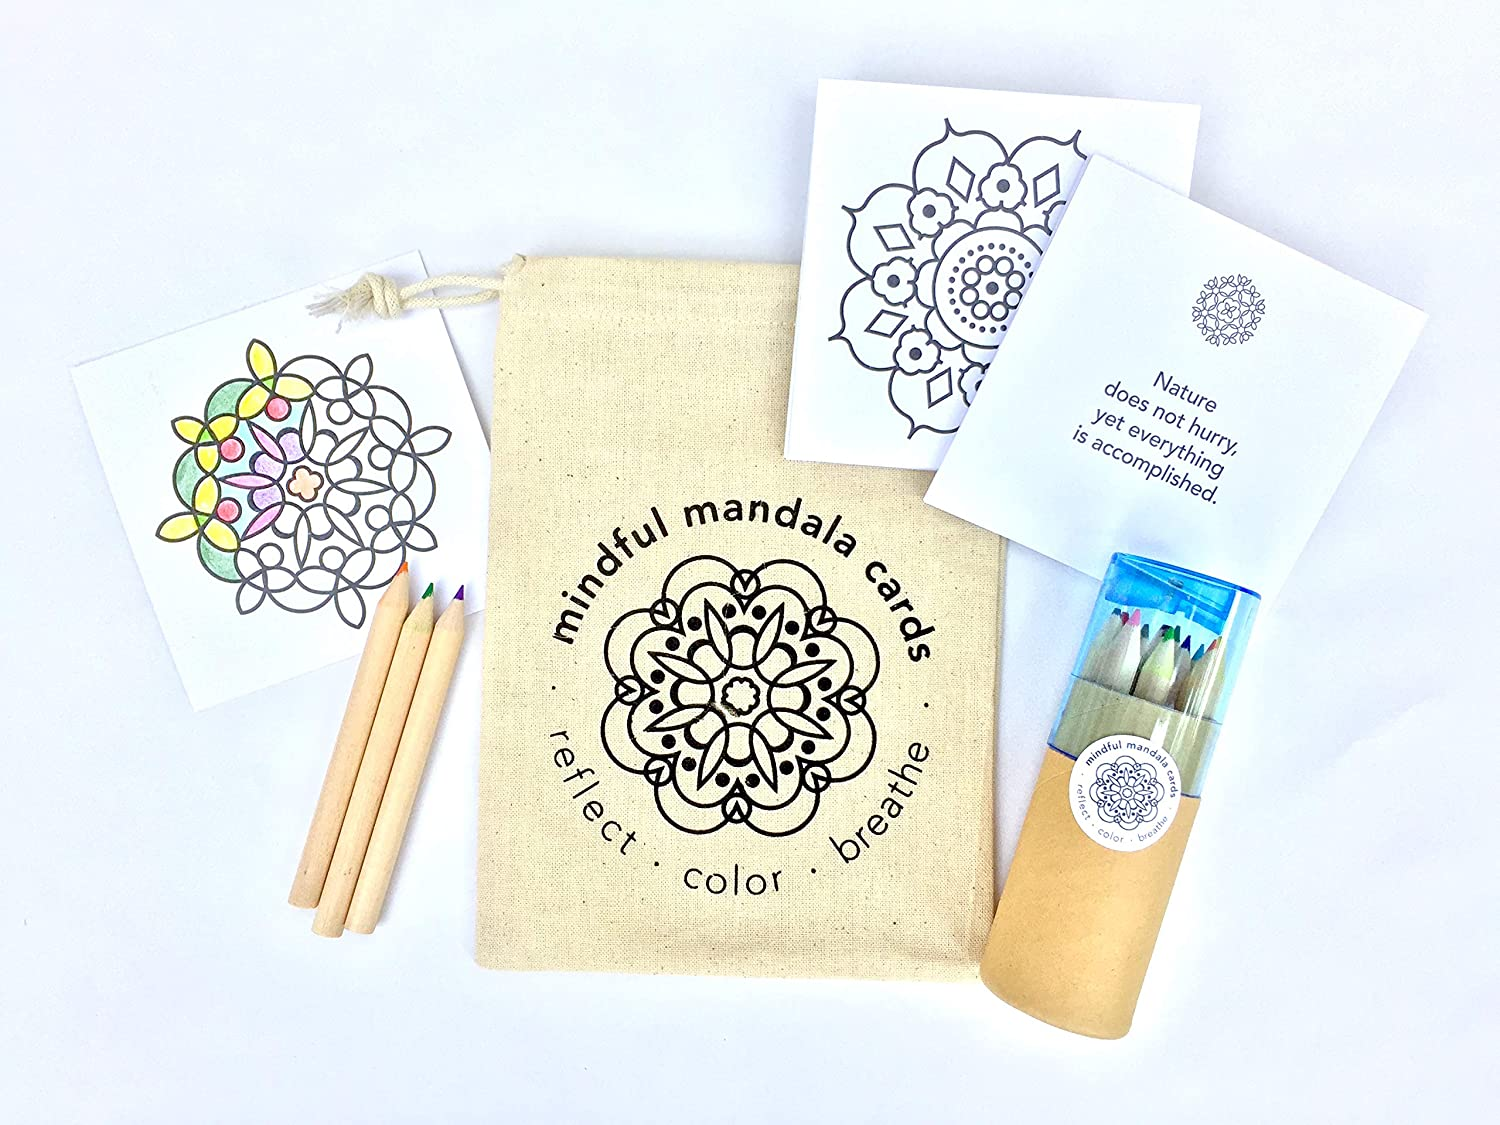 Amazon Com Mindful Mandala Cards With Pencils Set On The Go Mindfulness Coloring Kit With 24 Mandala Coloring Cards Paired With Quotations Plus Tube Of 12 Colored Pencils And Built In Sharpener